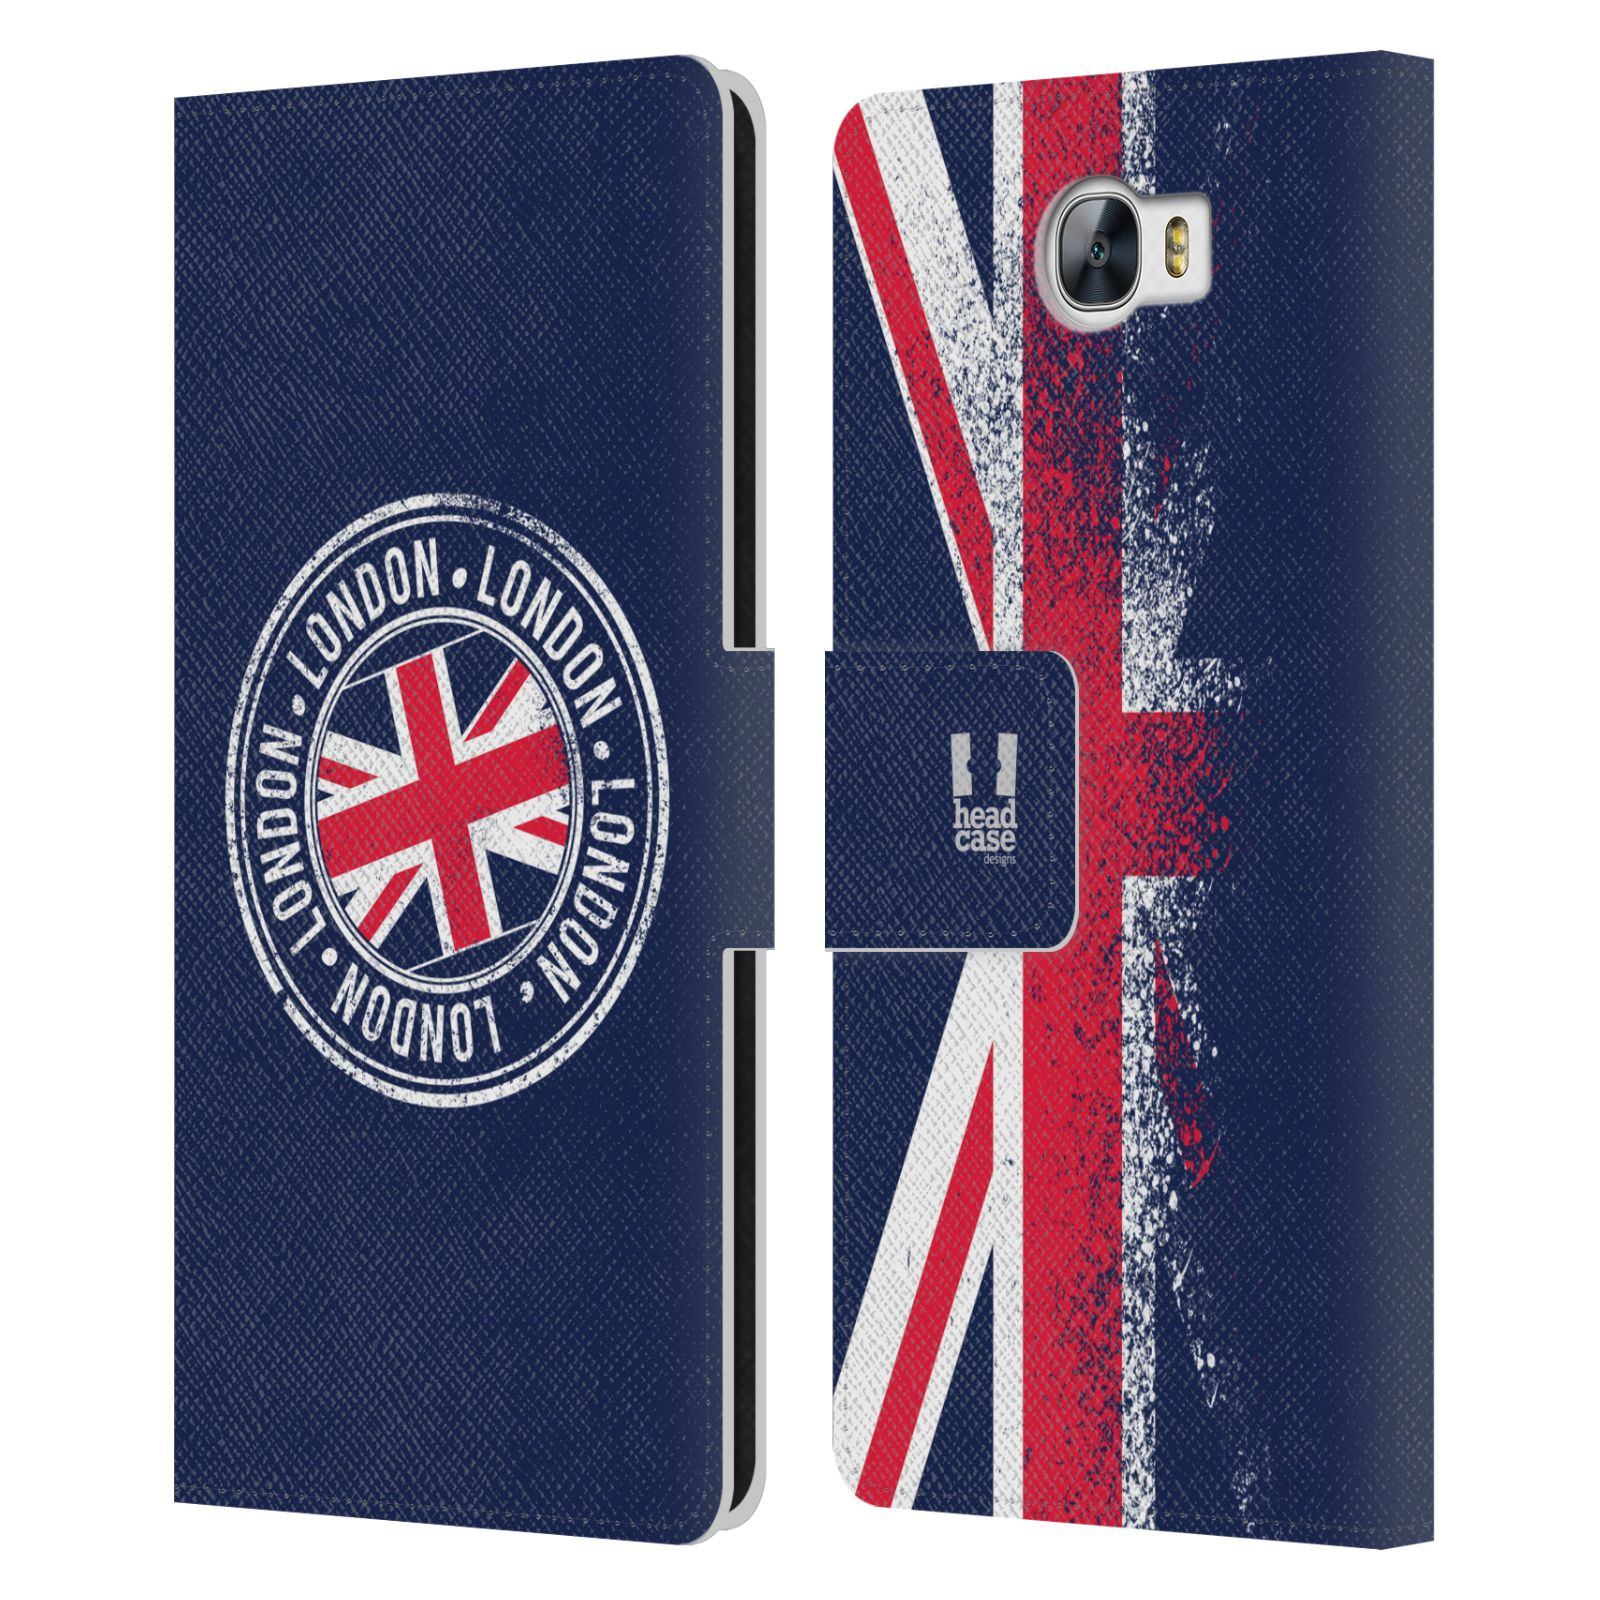 coque huawei y6 compact londres